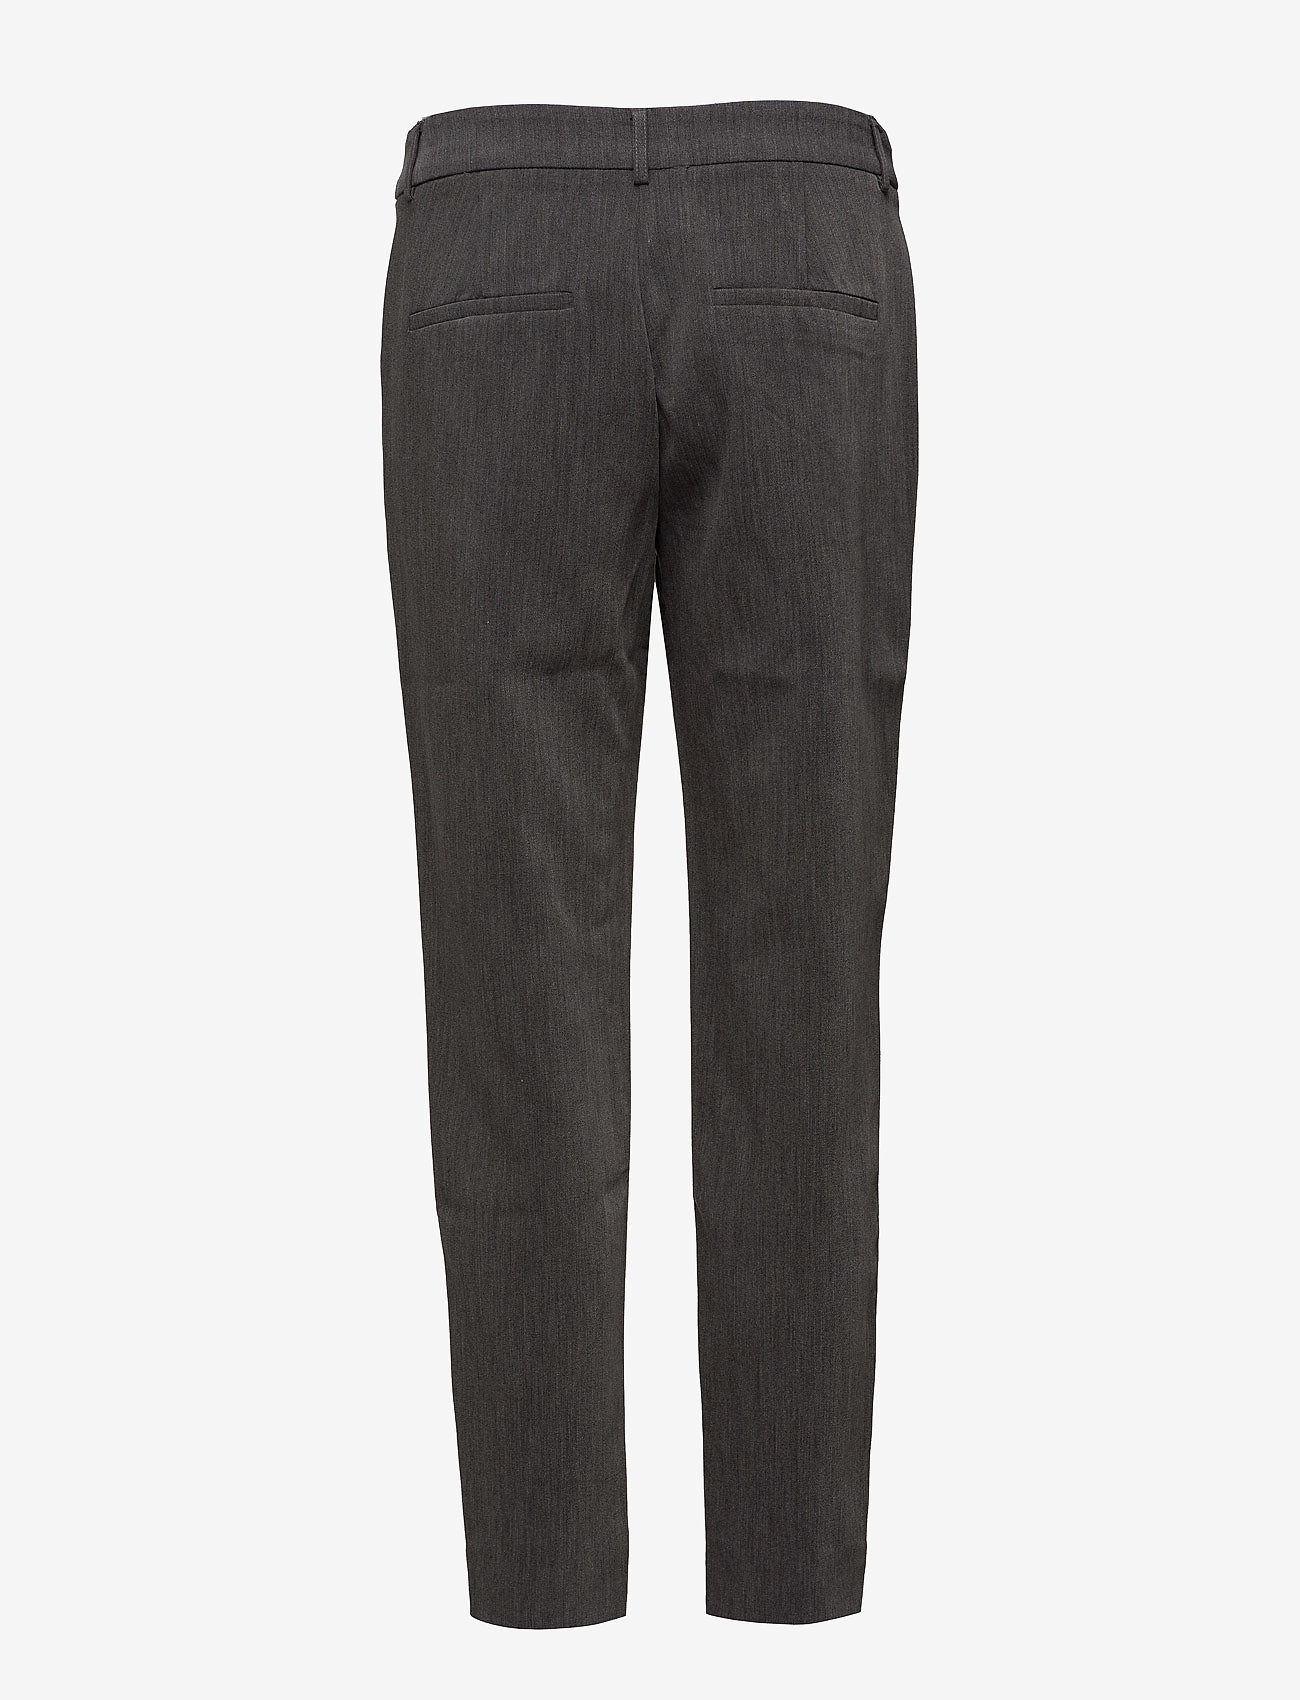 Selected Femme - SLFAMILA MW PANT NOOS - straight leg trousers - dark grey melange - 1